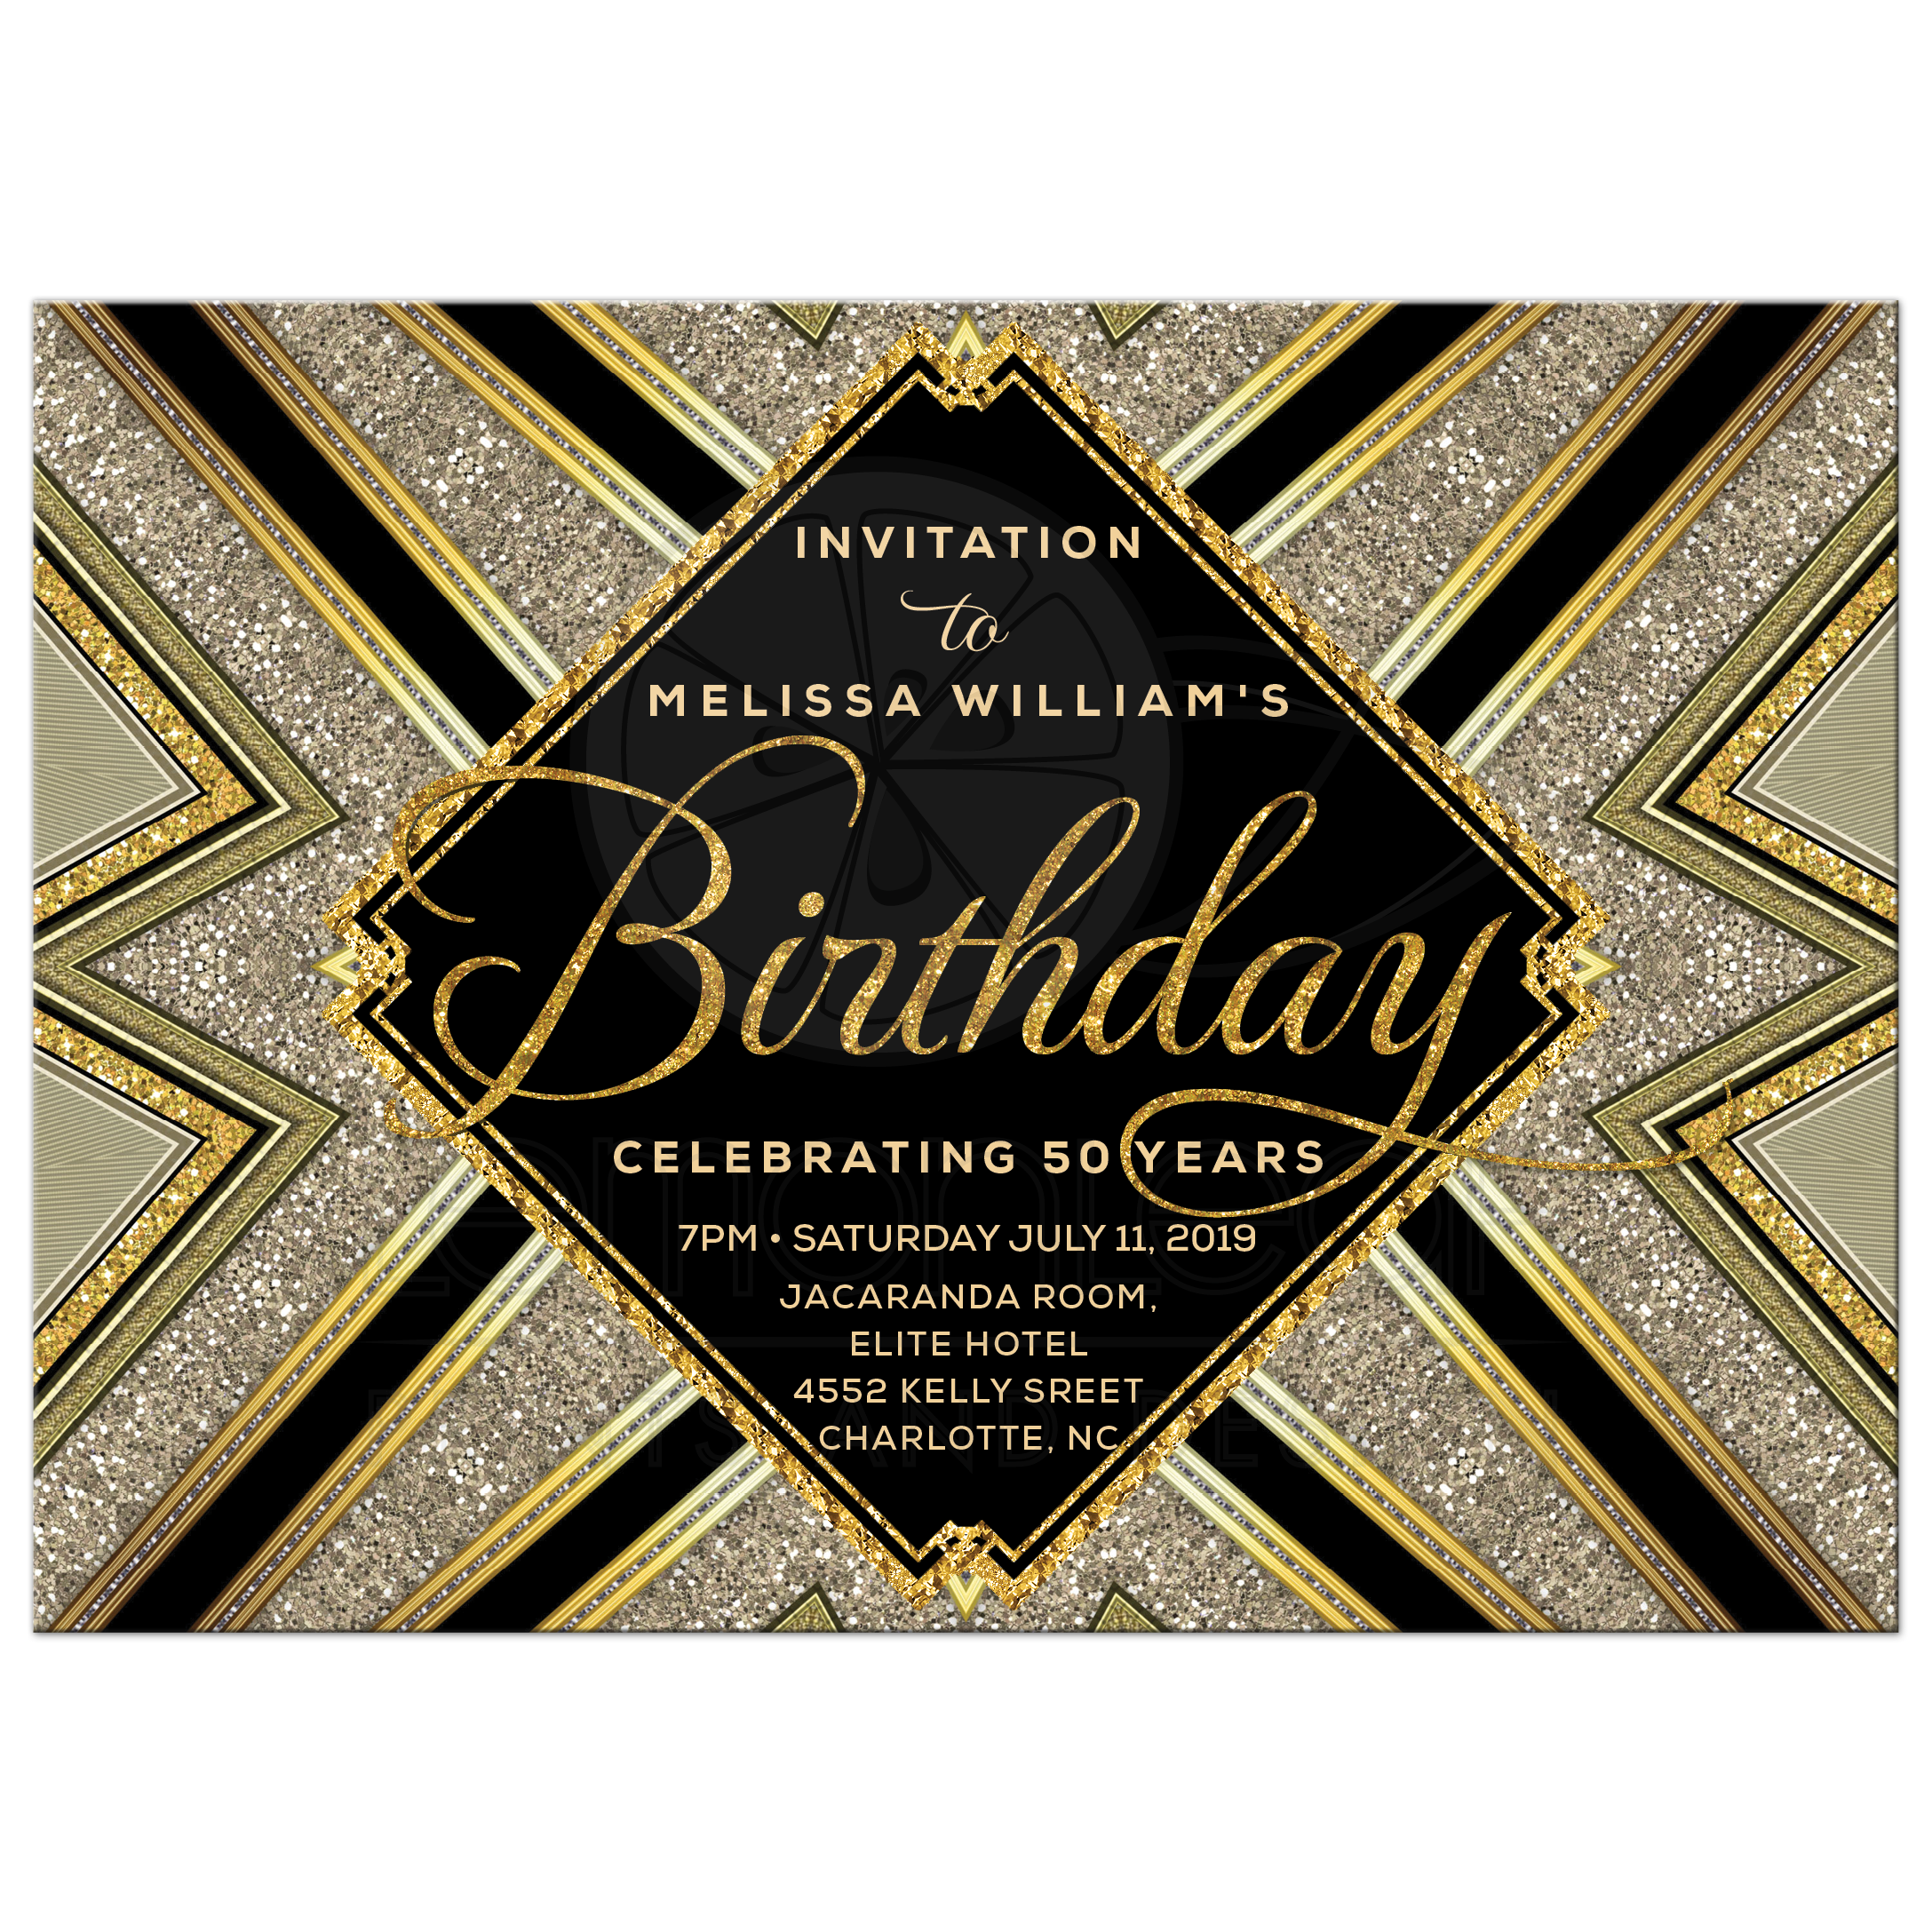 Sparkle glam deco black and gold birthday invitation sparkle glam deco black and gold birthday filmwisefo